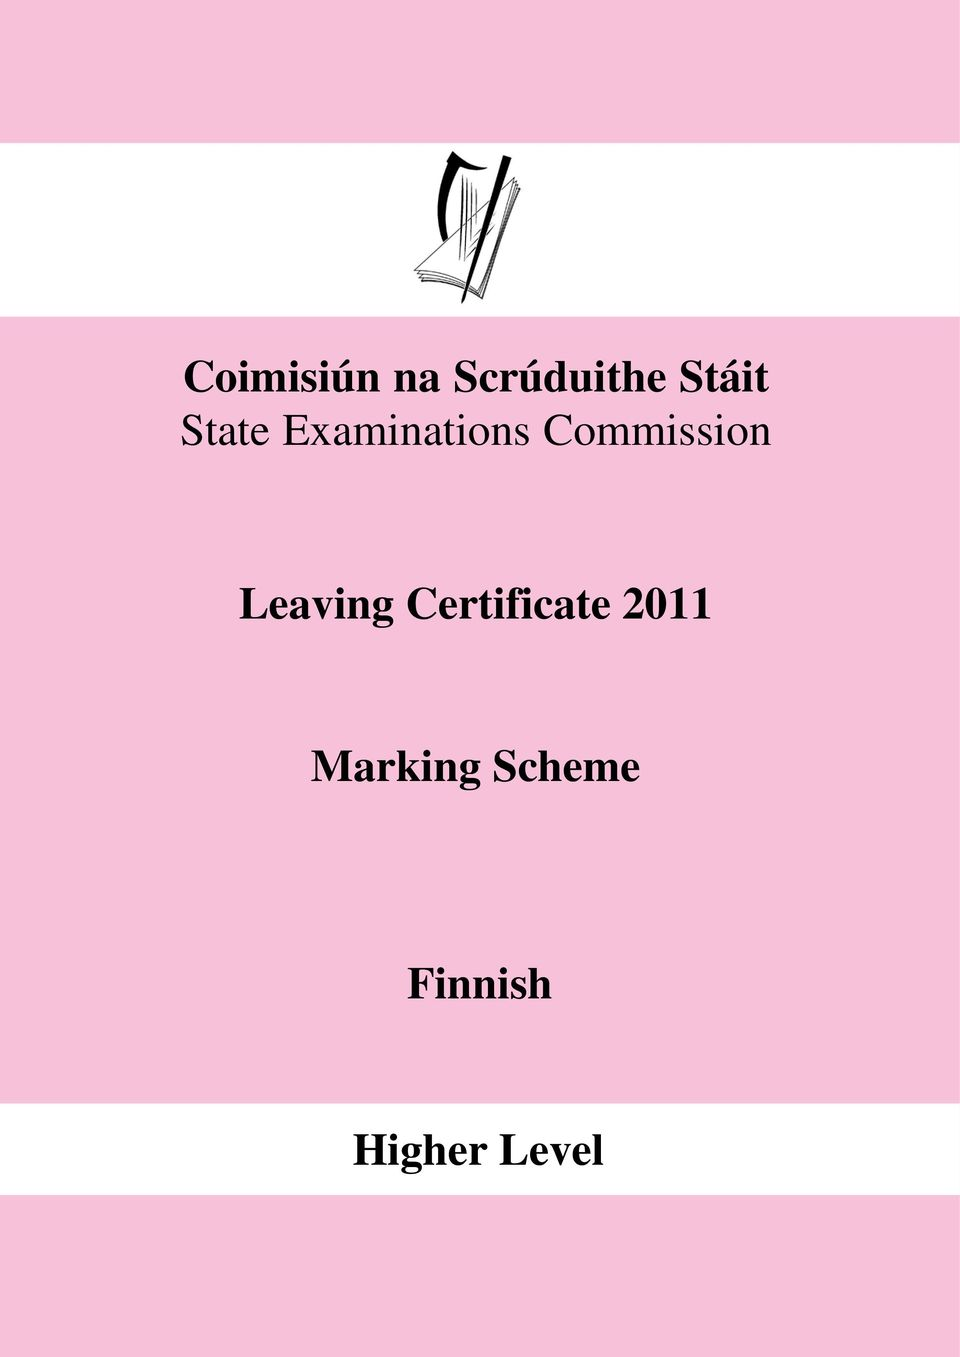 Leaving Certificate 2011